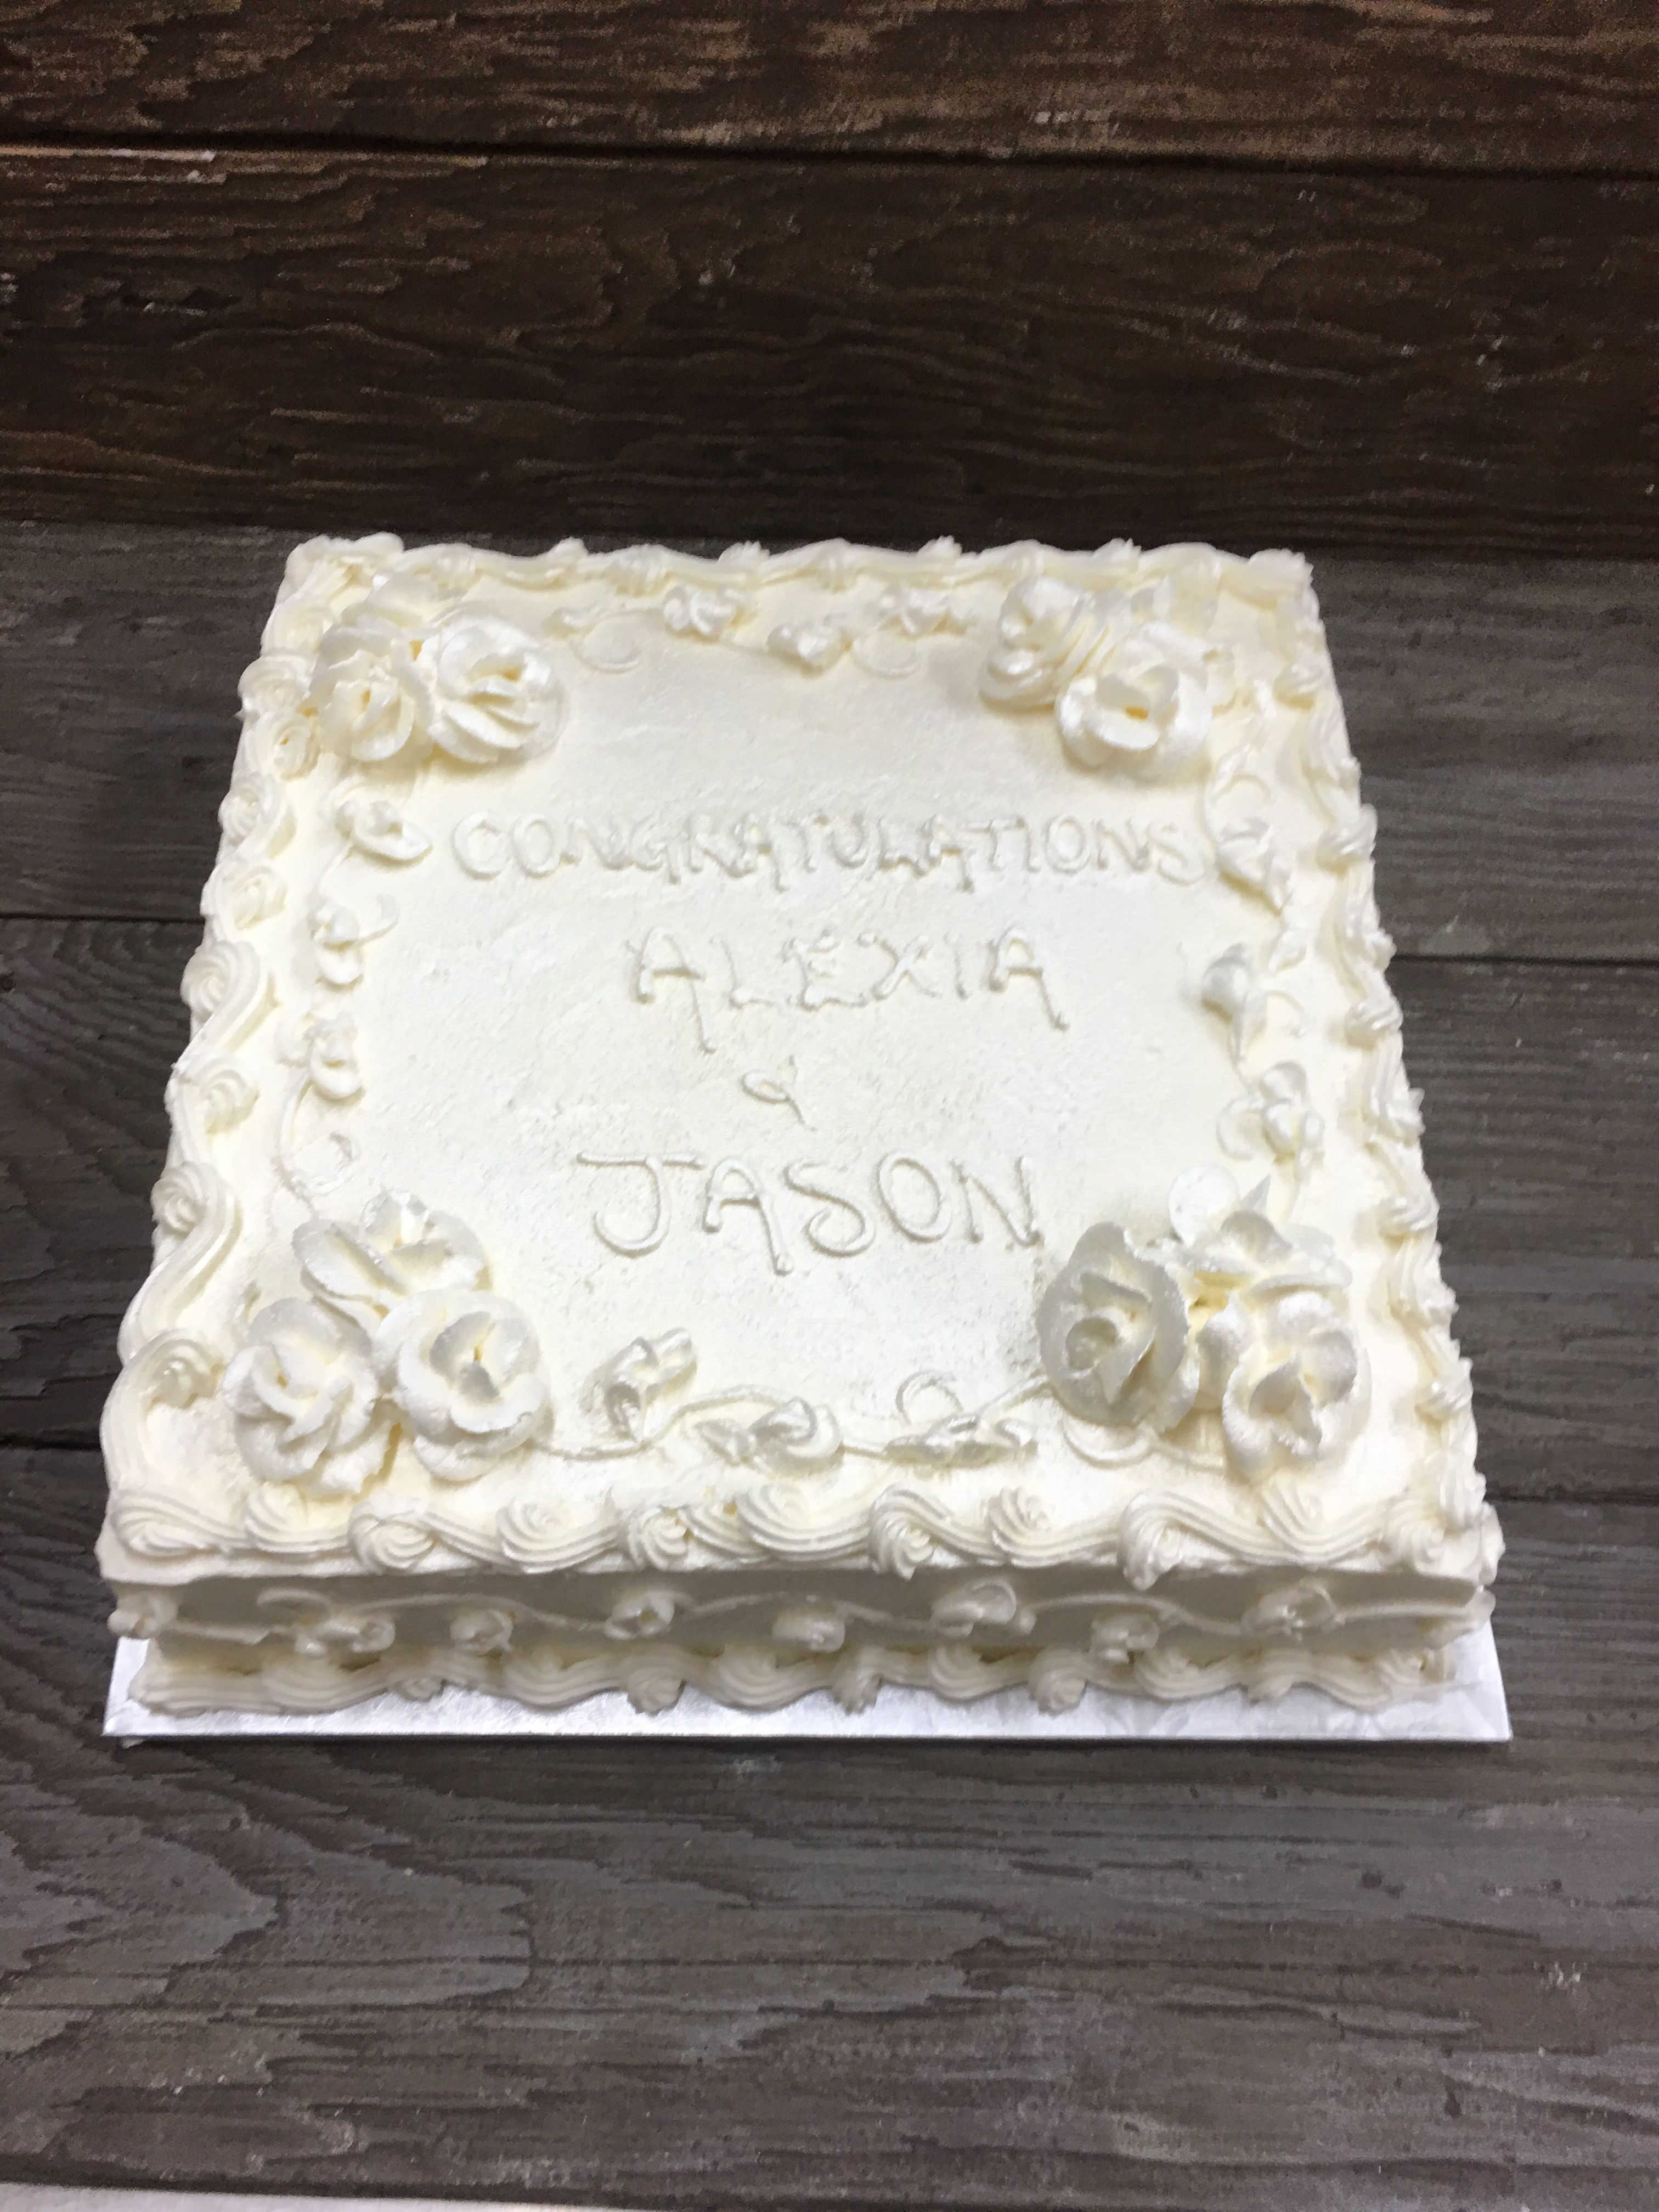 Prime White Square Birthday Cake 584 By Select Bakery With Images Funny Birthday Cards Online Overcheapnameinfo